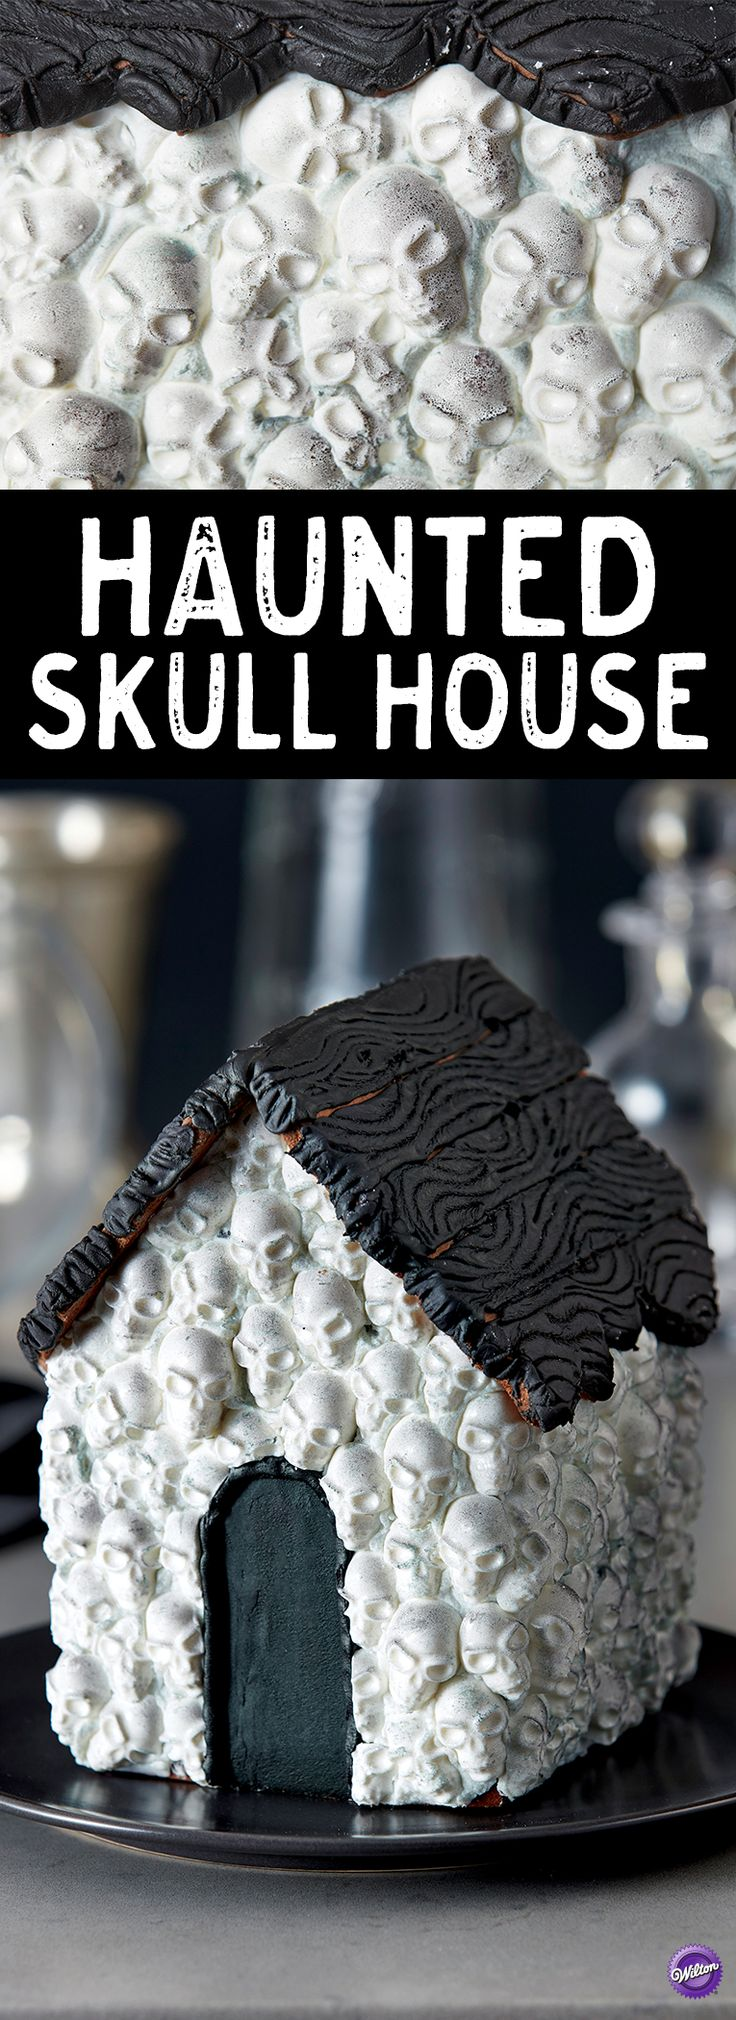 Haunted Skull House - This spooky gingerbread house covered in skulls made from Wilton Candy Melts® candy is sure to be the talk of the party! Create and display to show your Halloween spirit, or use as a centerpiece for any spooky gathering or Halloween party!